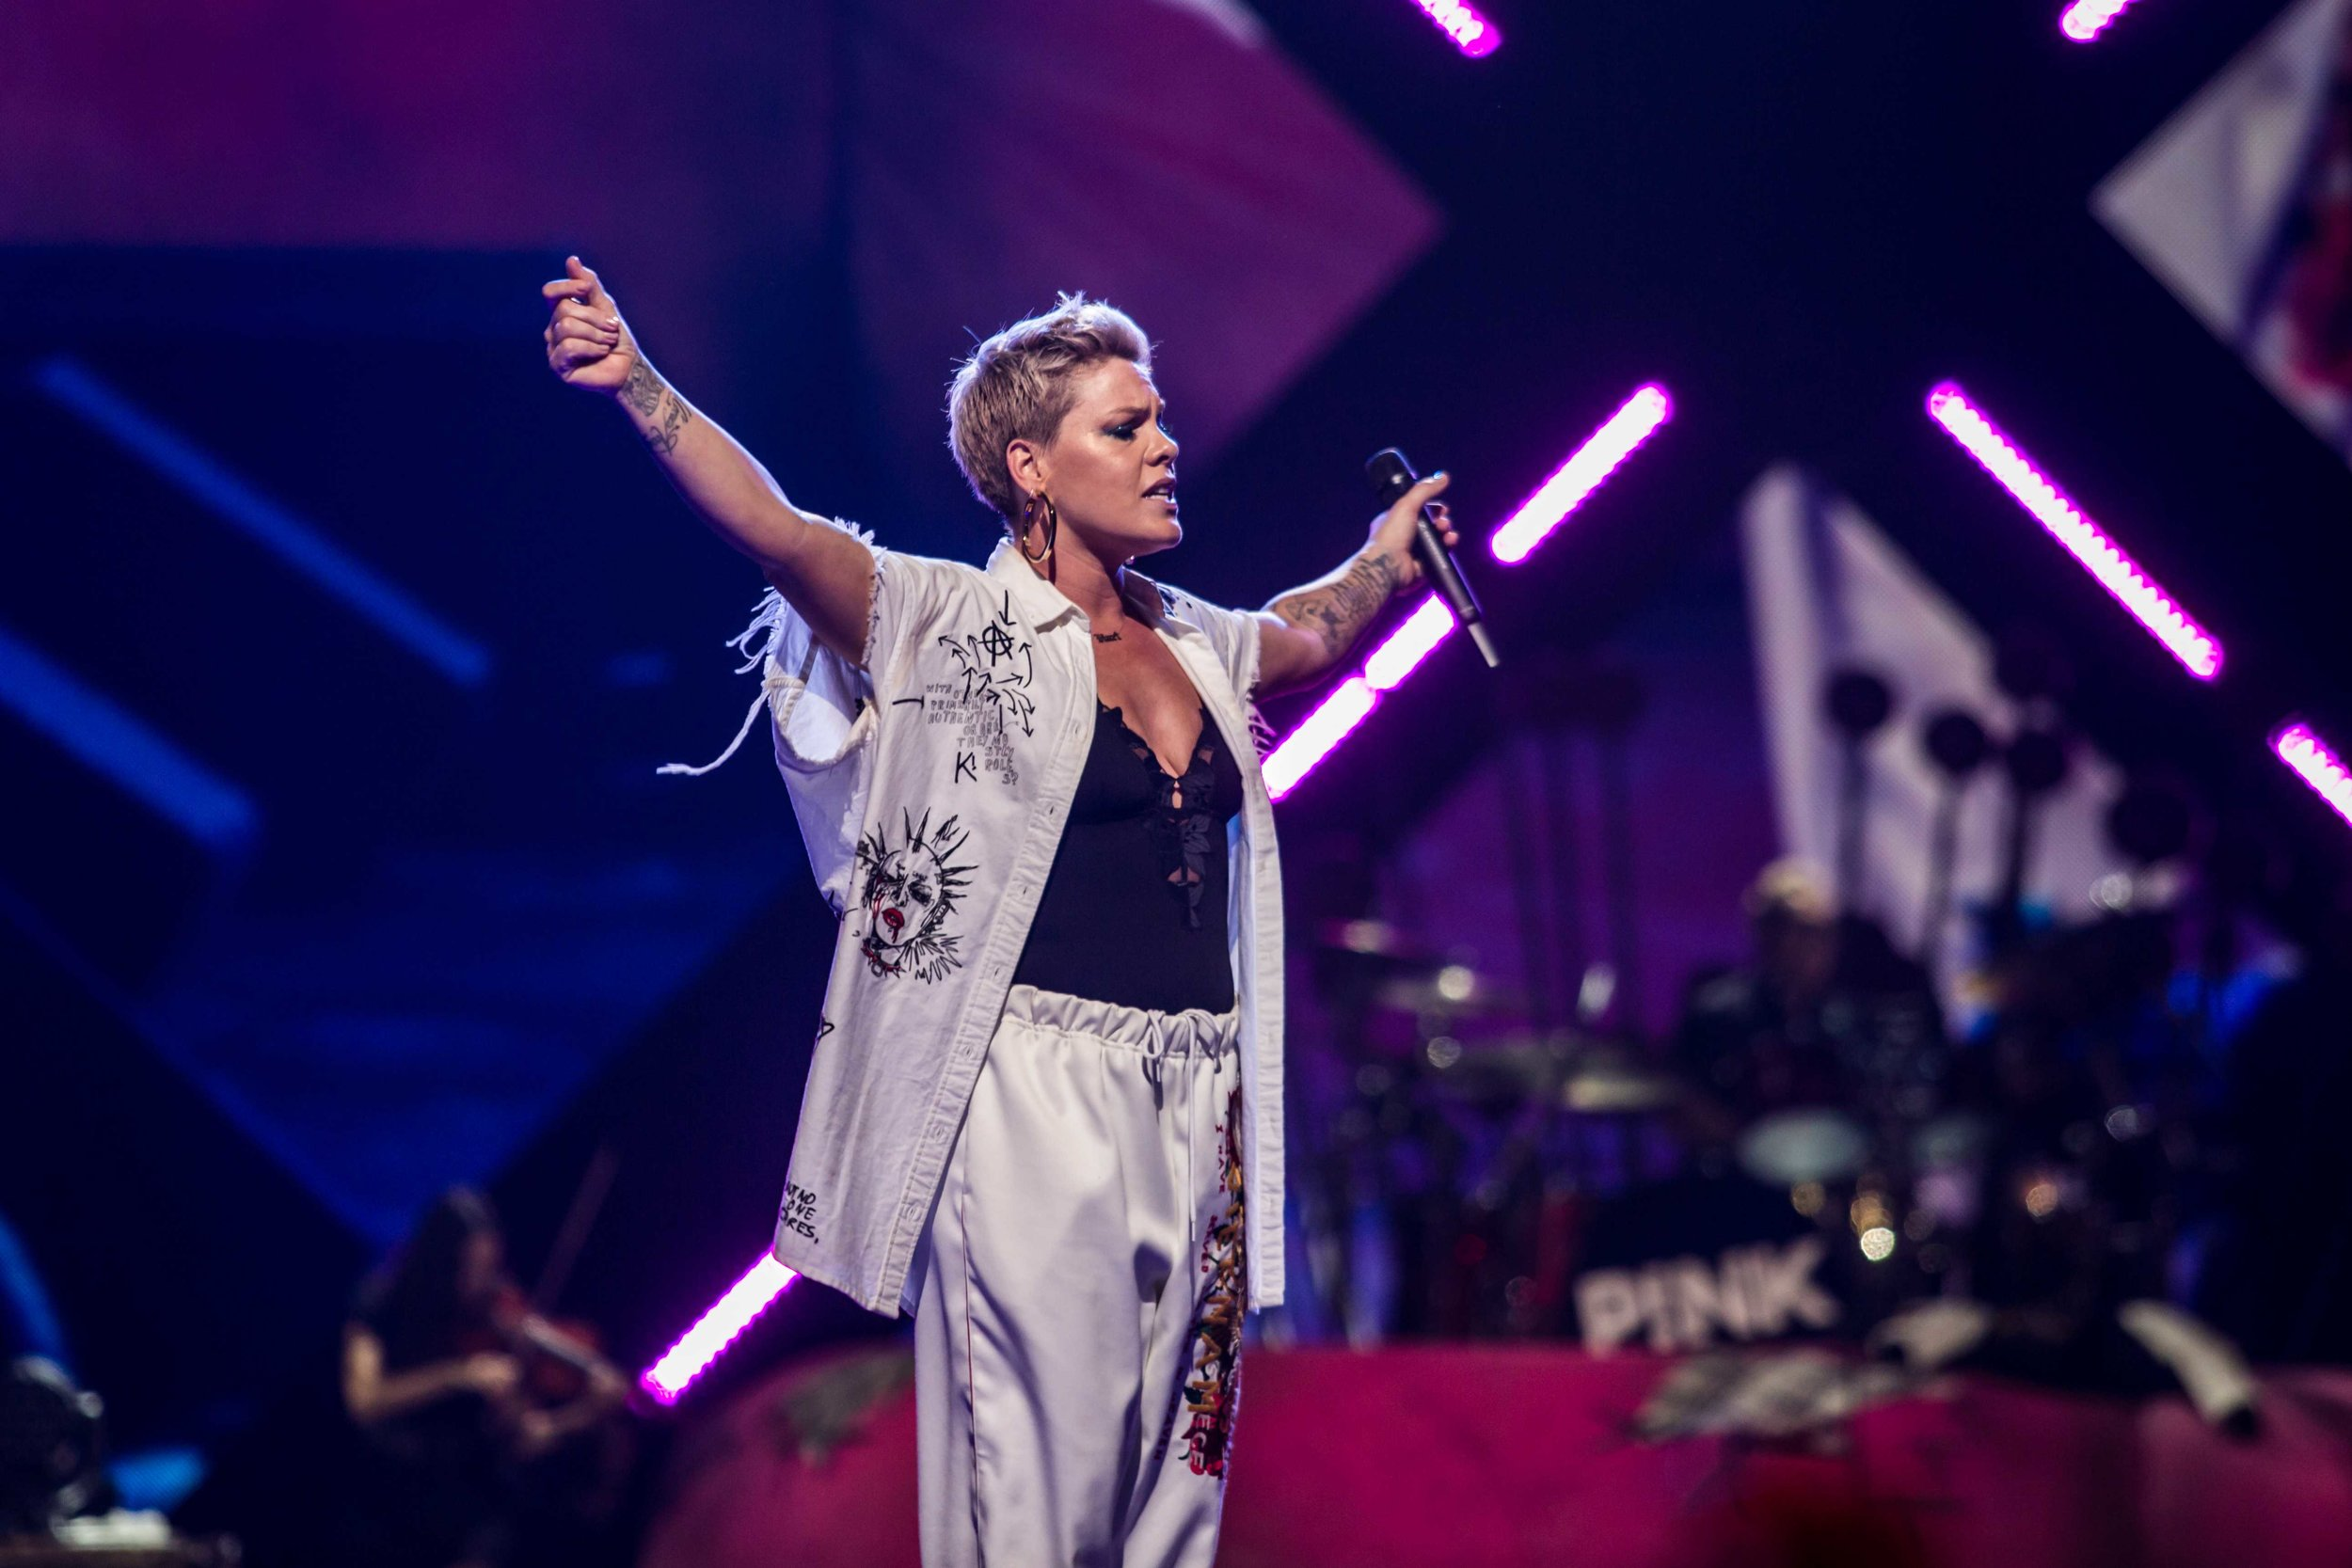 P!NK rocking the house on Friday night in Minneapolis (photo credit: Tyler Bloomquist)